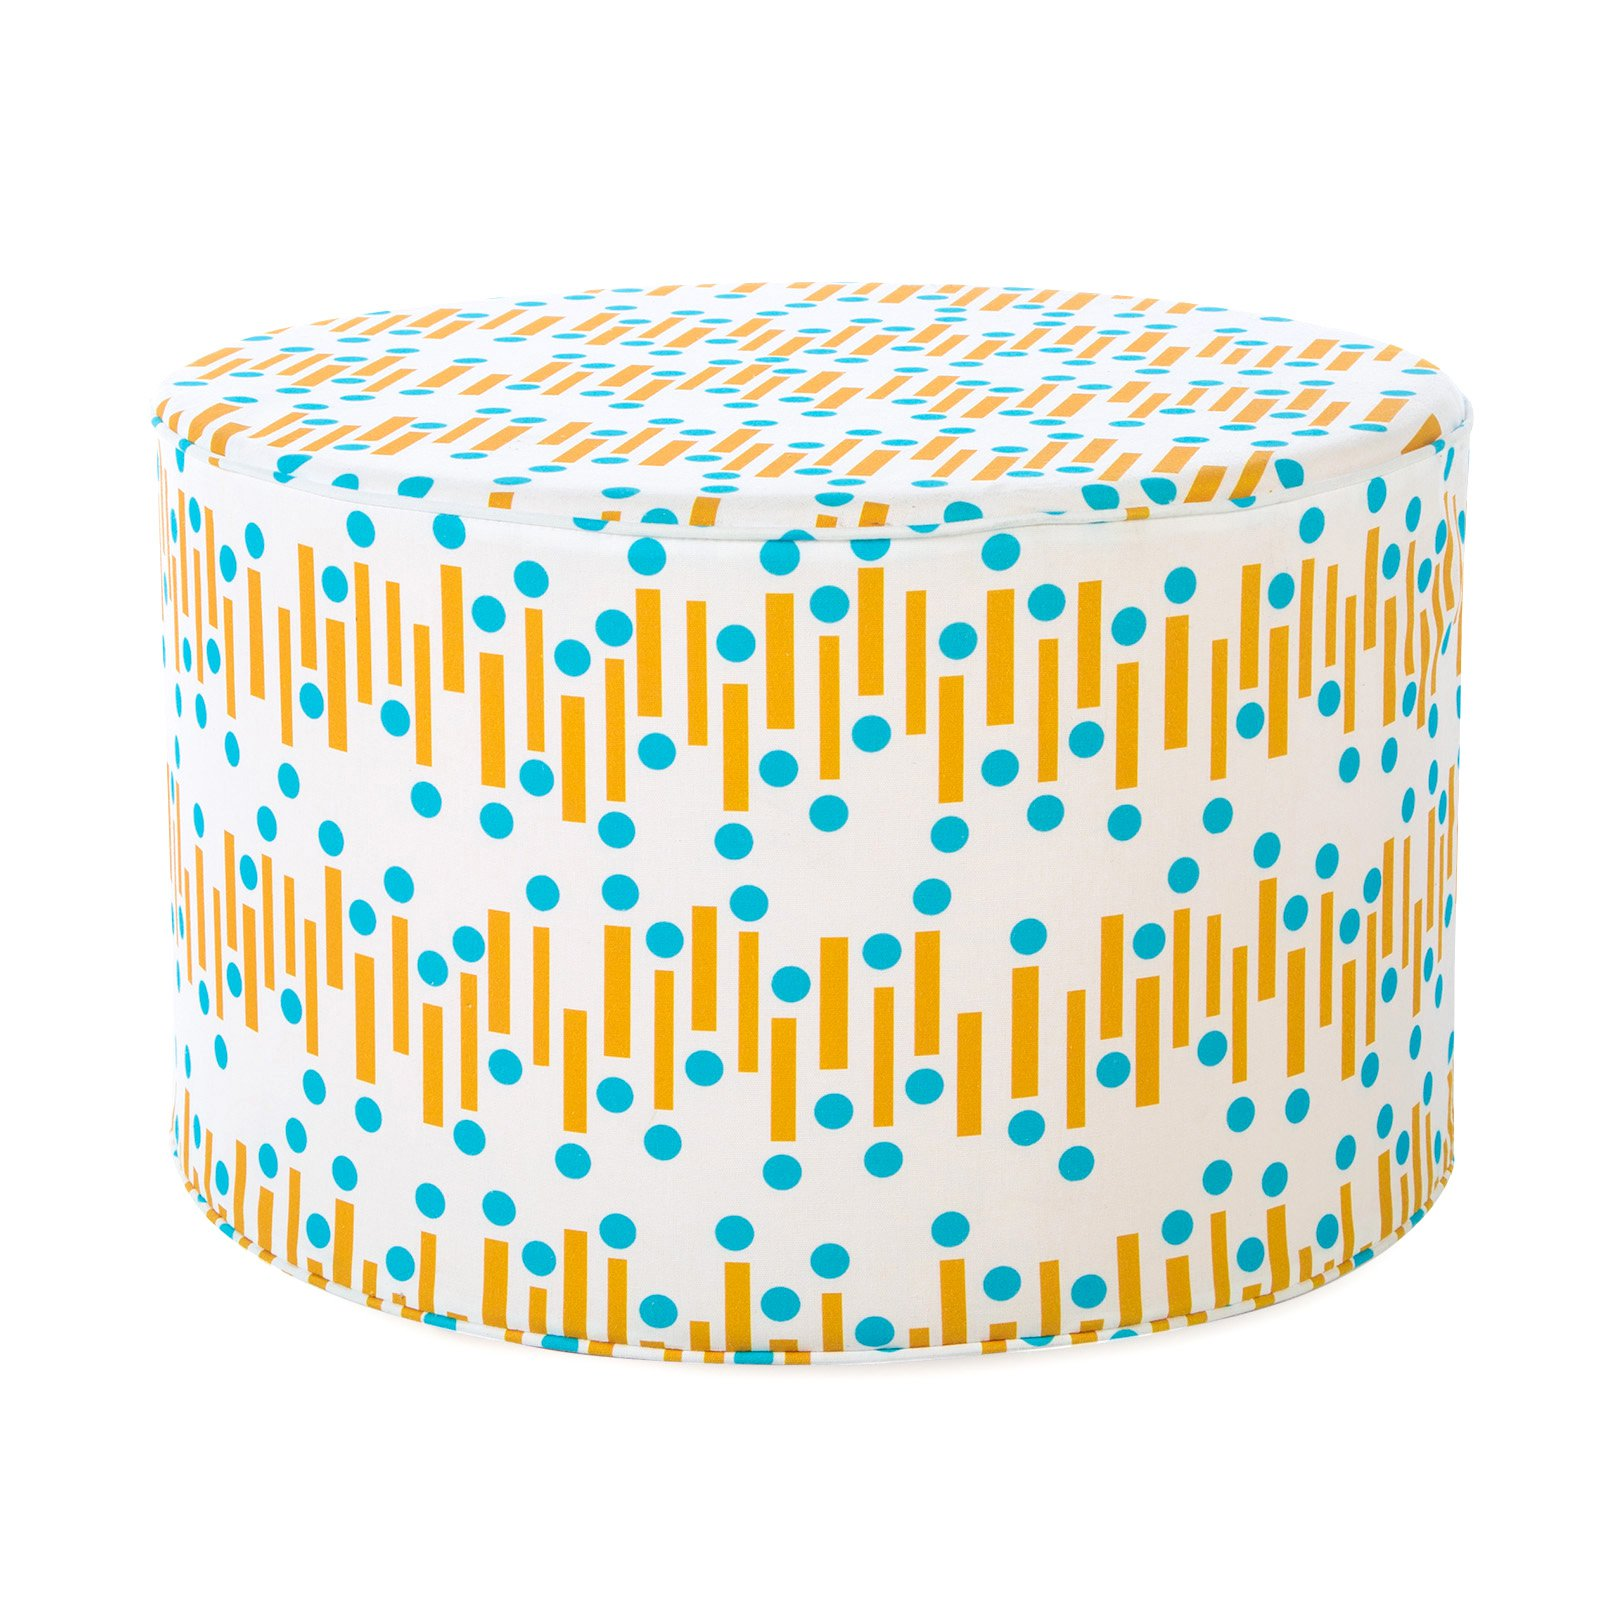 Coral Coast Mid-Century Modern 25 in. Round Pouf Outdoor Ottoman by